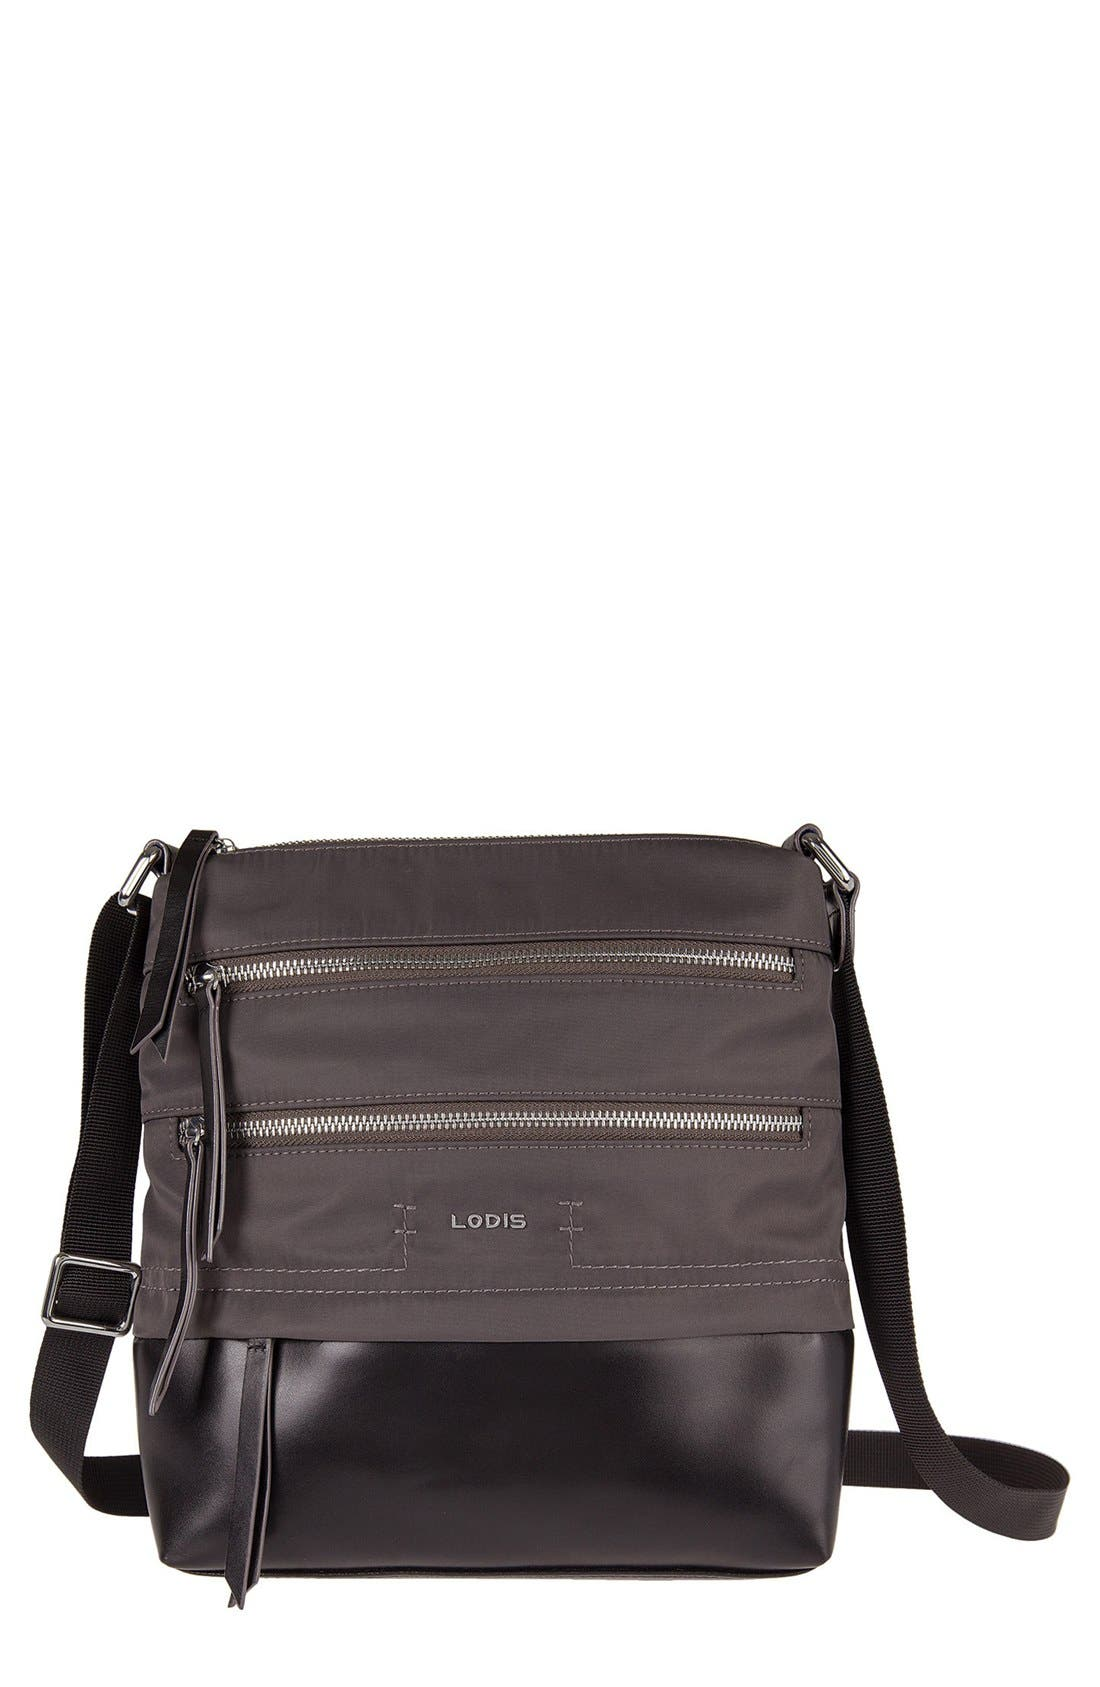 Alternate Image 1 Selected - LODIS Wanda RFID Nylon & Leather Crossbody Bag